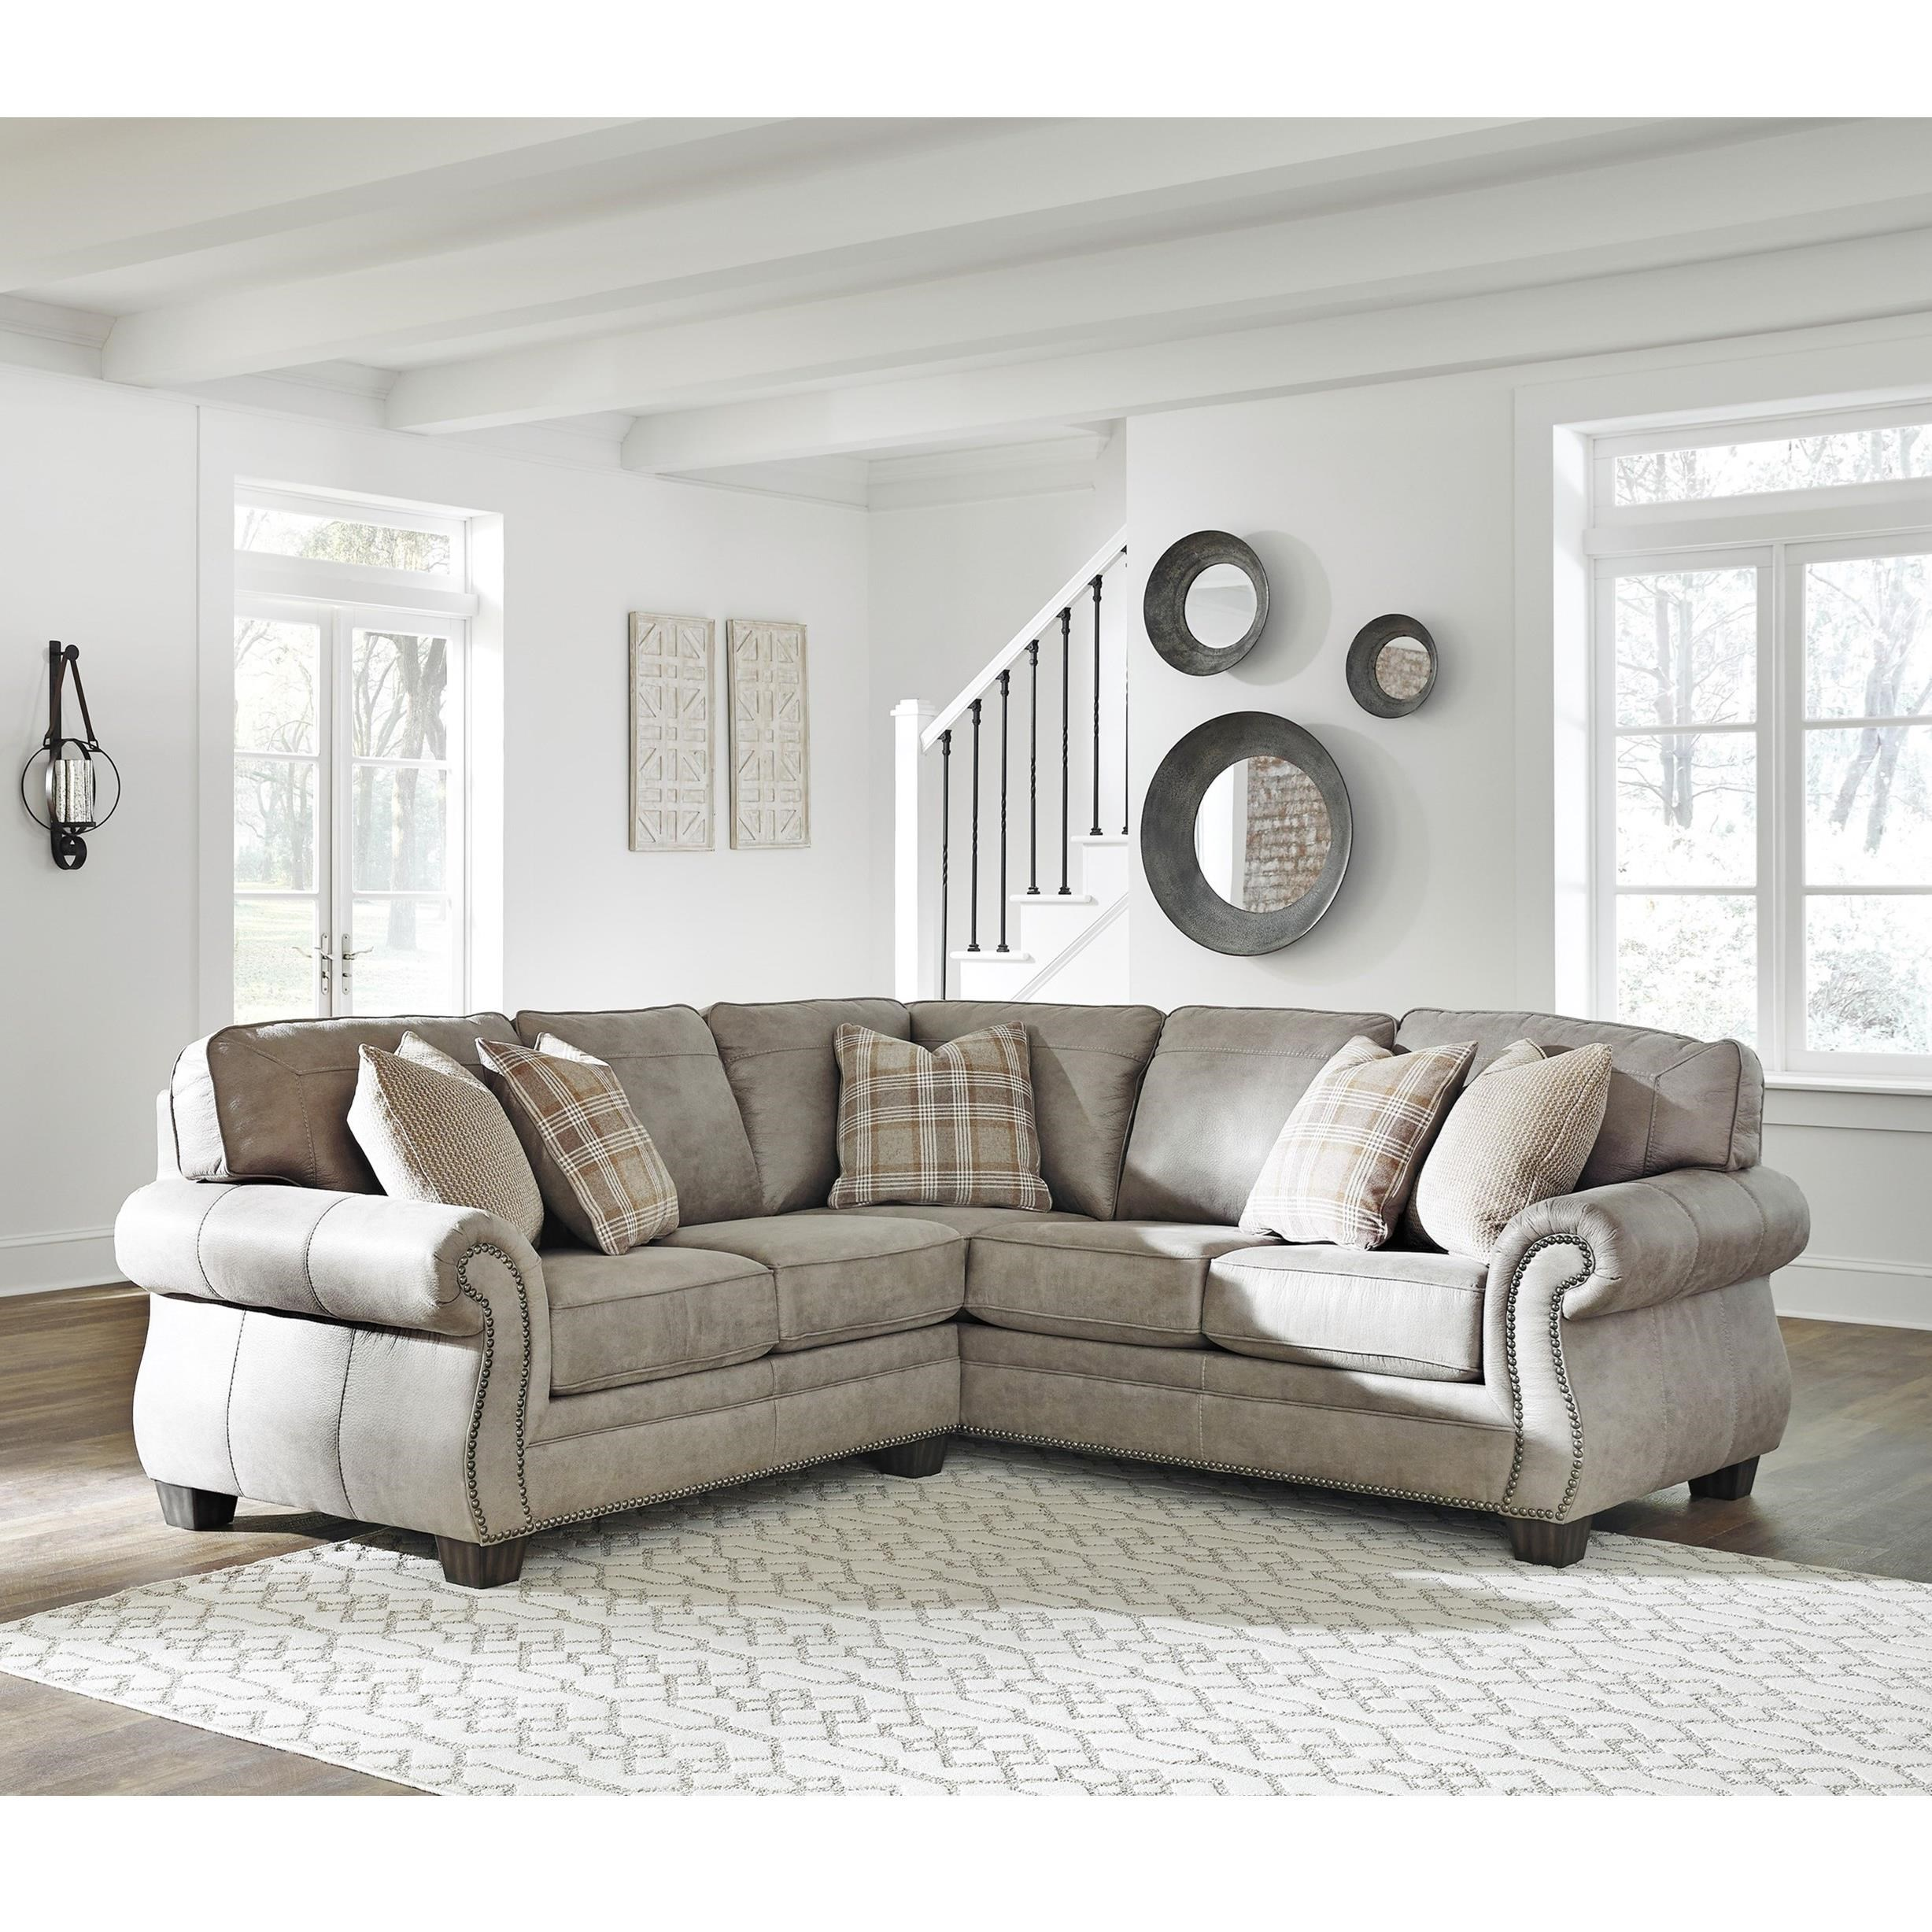 Olsberg 2 Piece Sectional by Signature Design by Ashley at Beck's Furniture